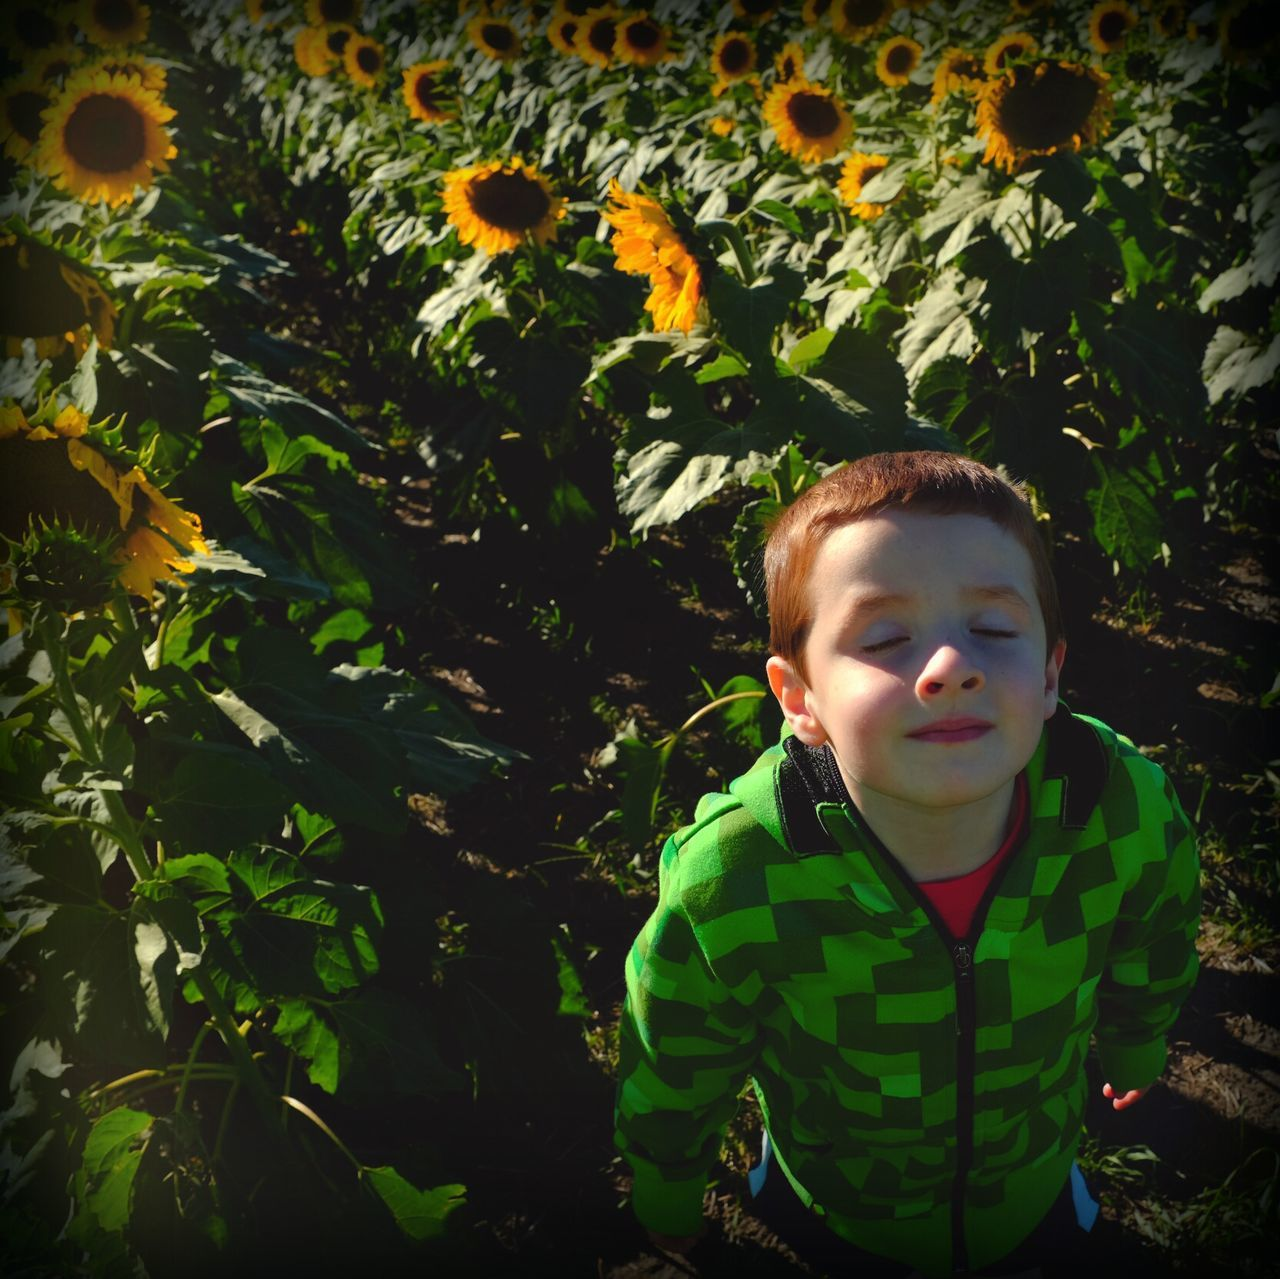 """""""If I was a sunflower, I would face the sun."""" Victor Santino My Best Photo 2014 The EyeEm Facebook Cover Challenge Portrait Of A Friend Eye For Photography Candid Portraits EyeEm Best Shots Beautiful Sunlight Darkness And Light Fall Beauty"""